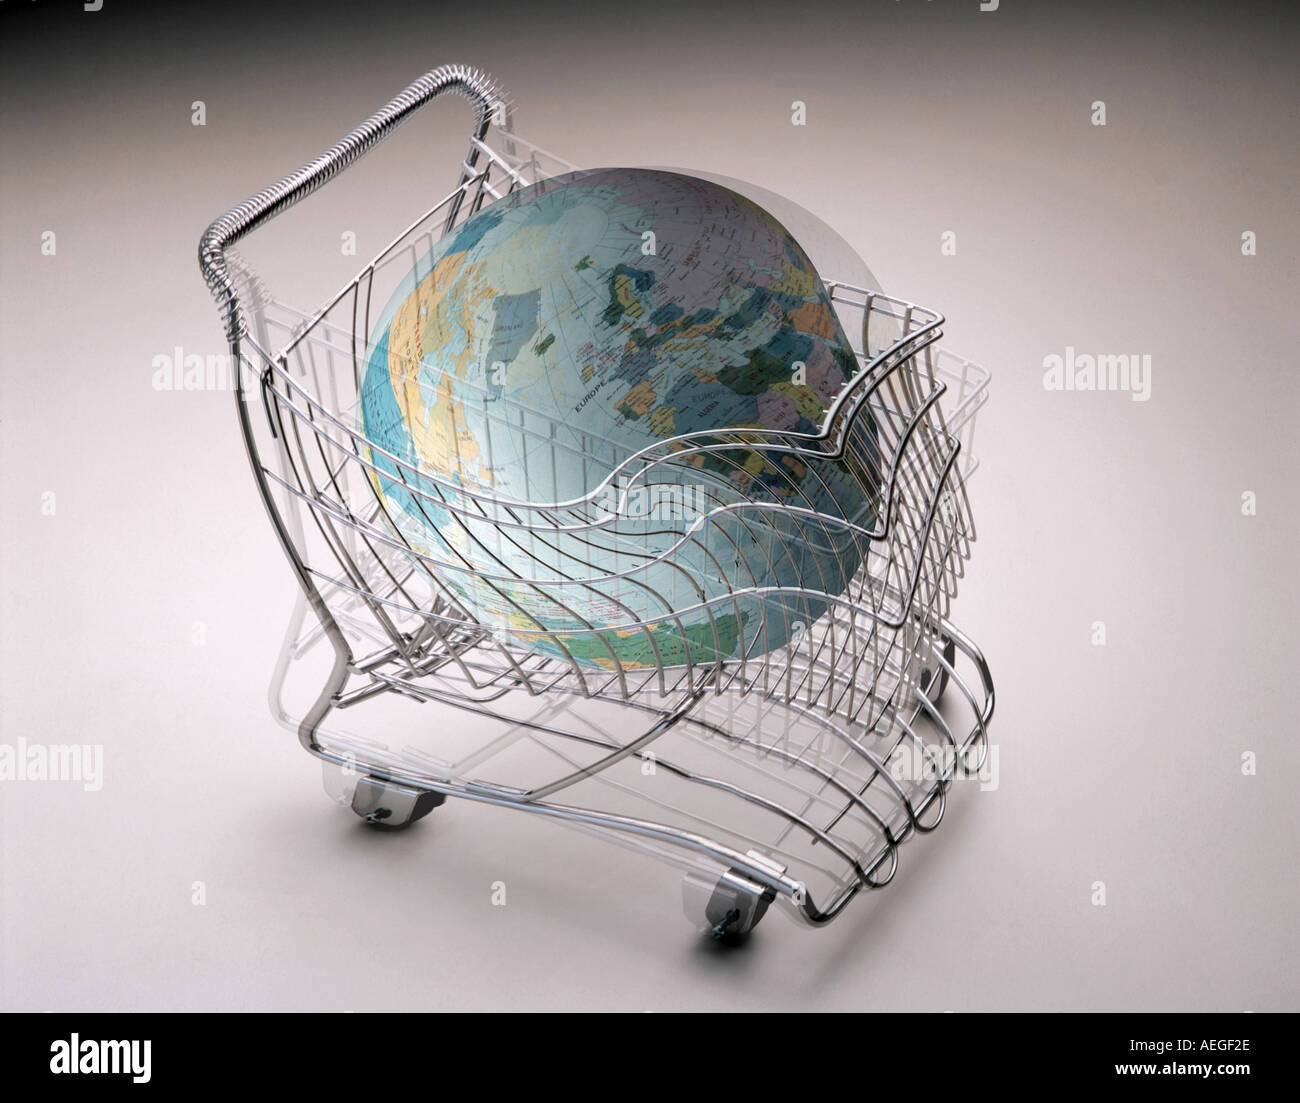 Office shopping cart deformed busines for sale business concept map office shopping cart deformed busines for sale business concept map globe gumiabroncs Images